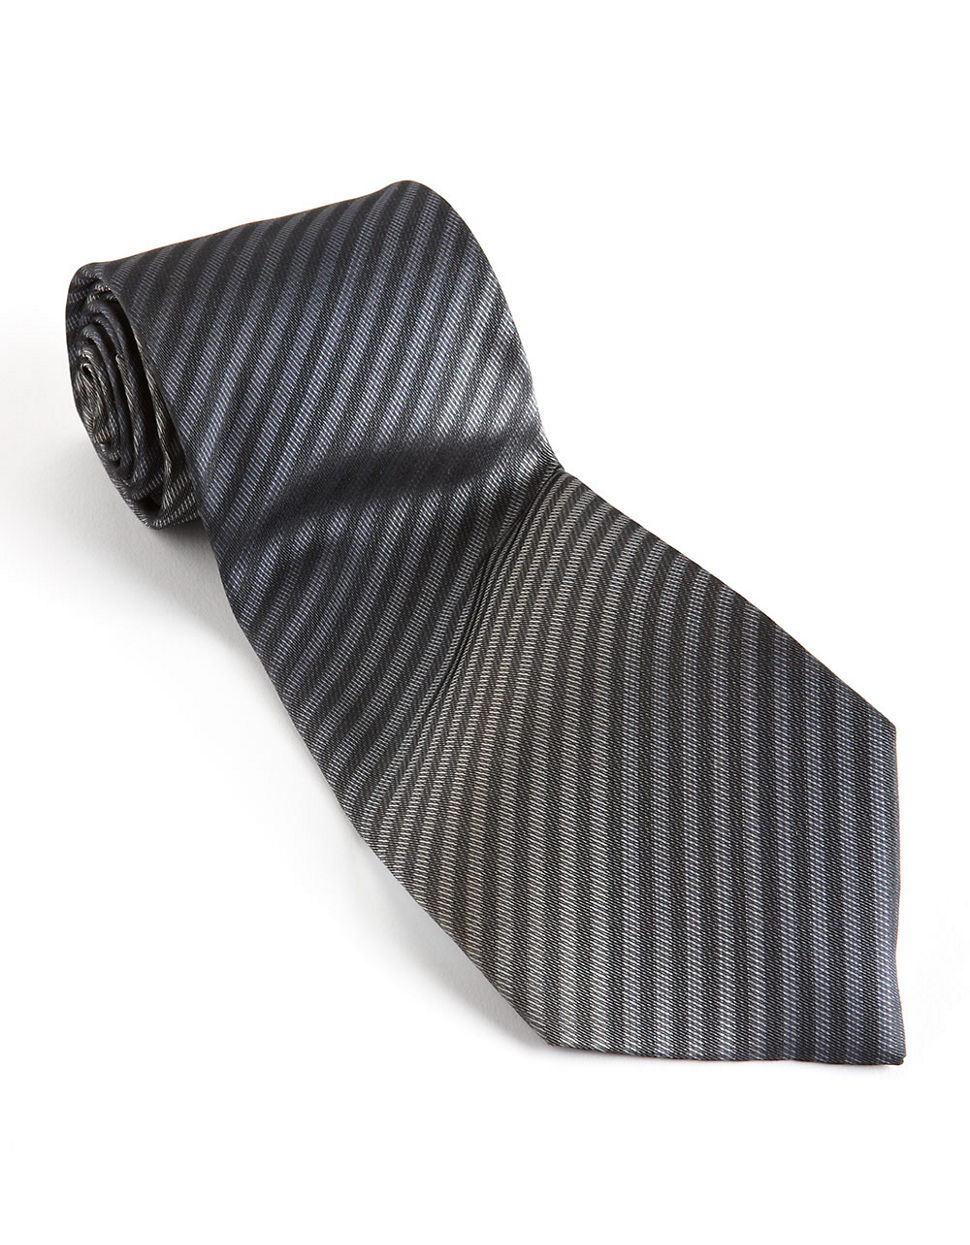 Kenneth cole new york Silk Stripe Tie black One Size